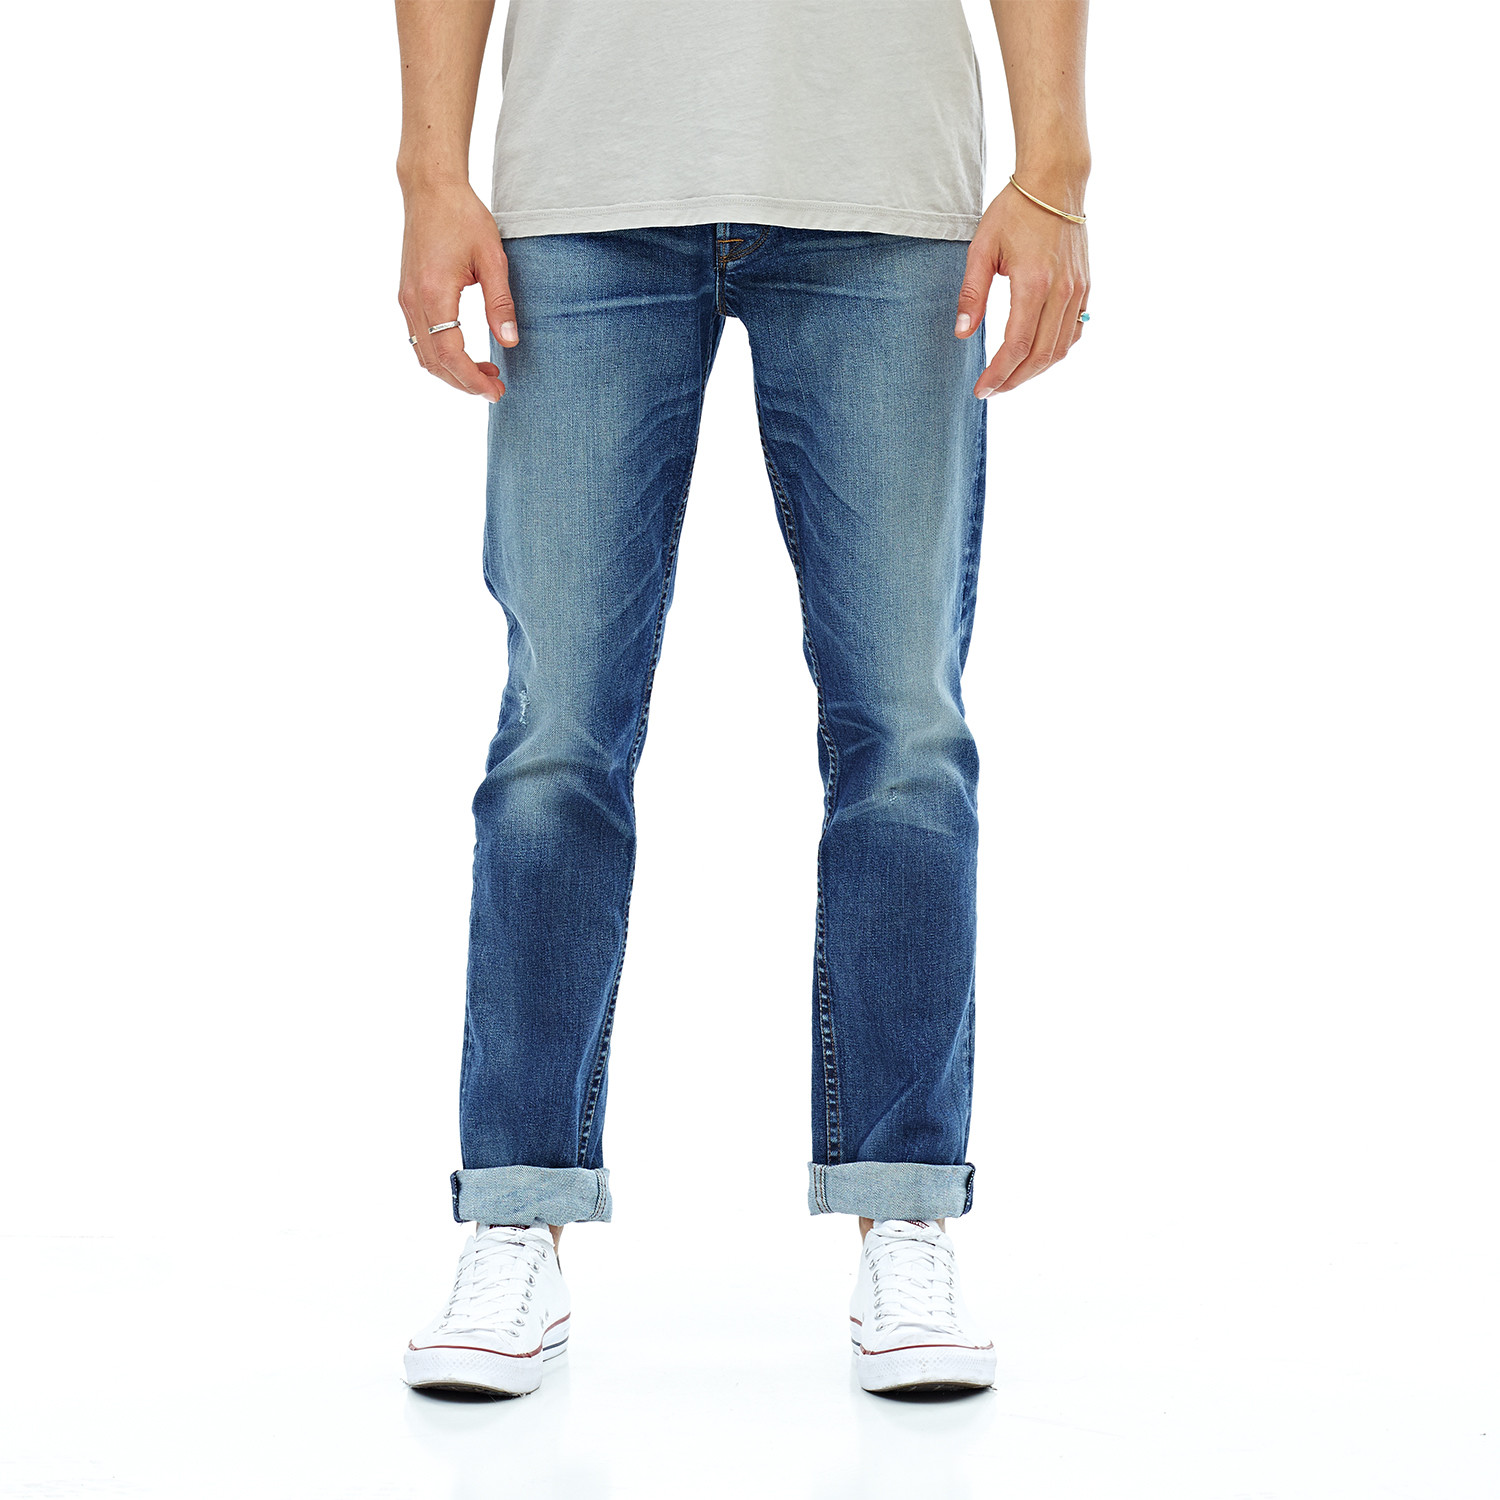 ffb18c4e Blake Slim Straight Double Cuff Jean // Withstand (28WX34L) - Hudson ...